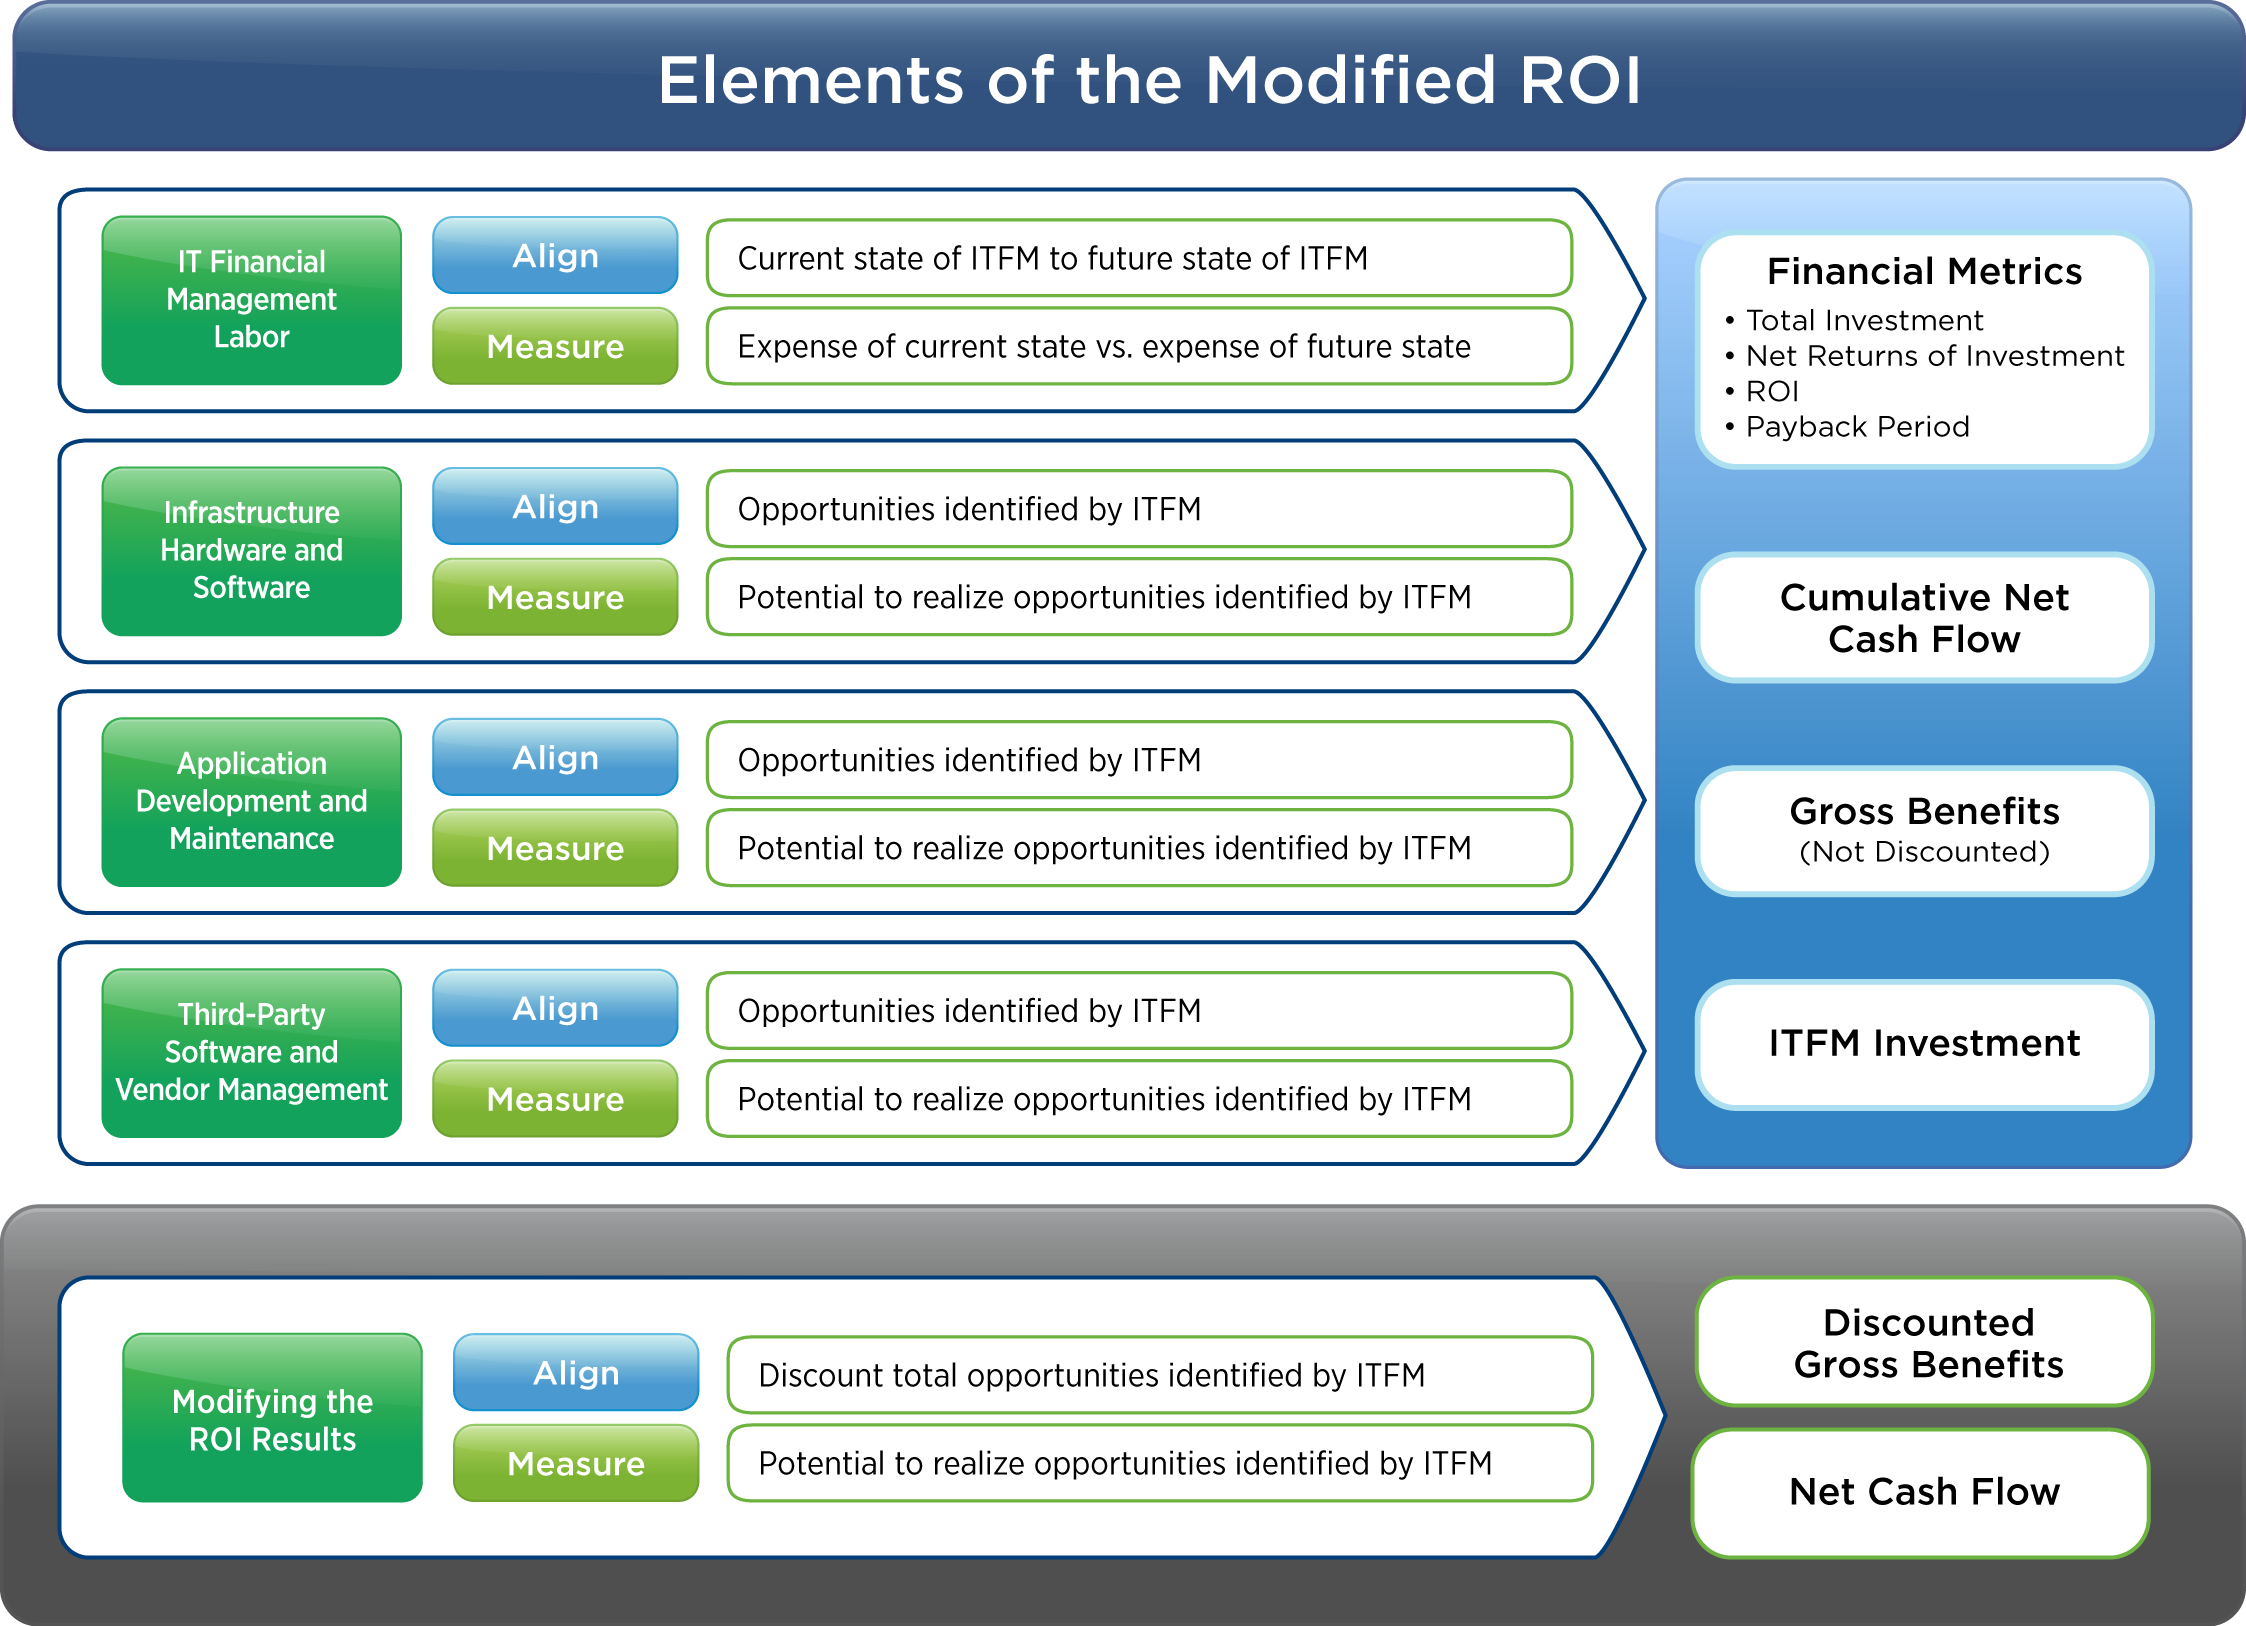 The modified ROI approach acknowledges the unique nature of an IT financial management investment through a reasonable methodology for attribution and measurement of soft benefits.